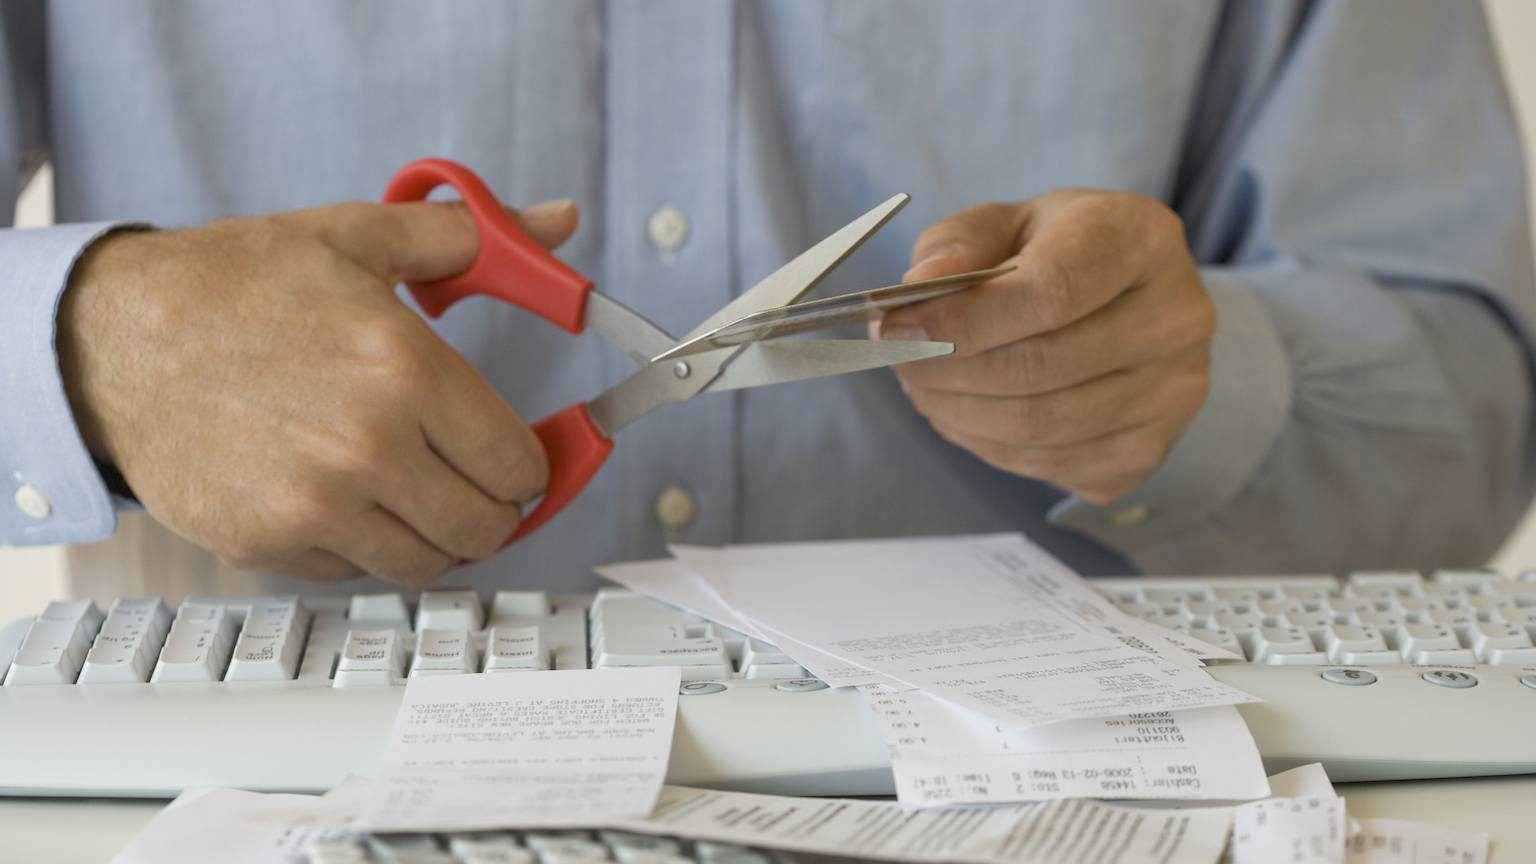 Man's hands cutting up credit card.